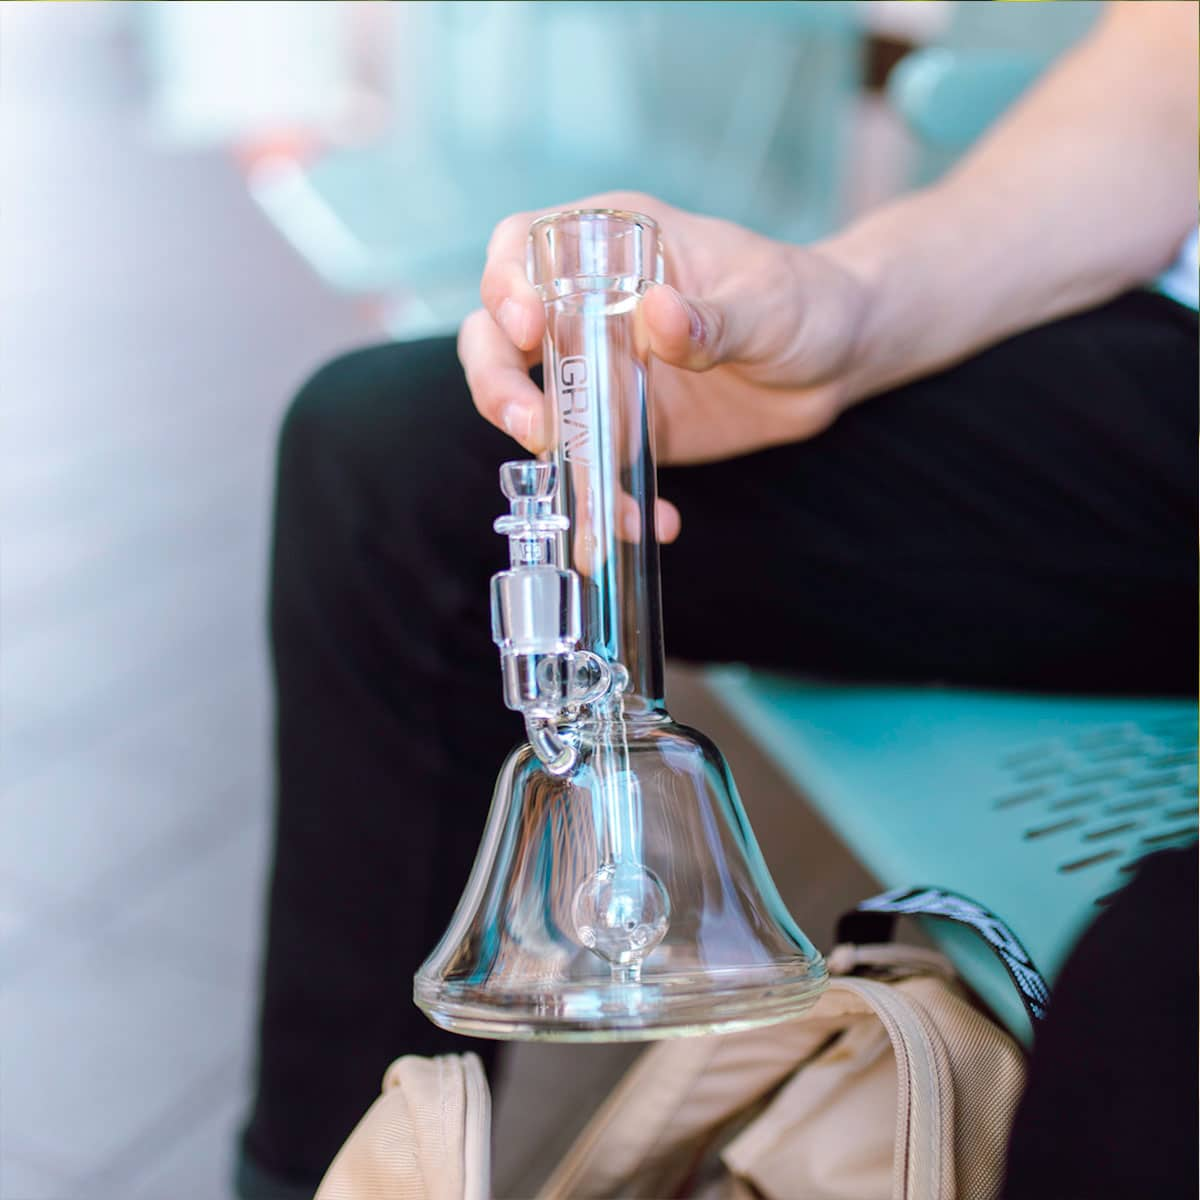 GRAV Labs Bell Base Bong Sitting Down